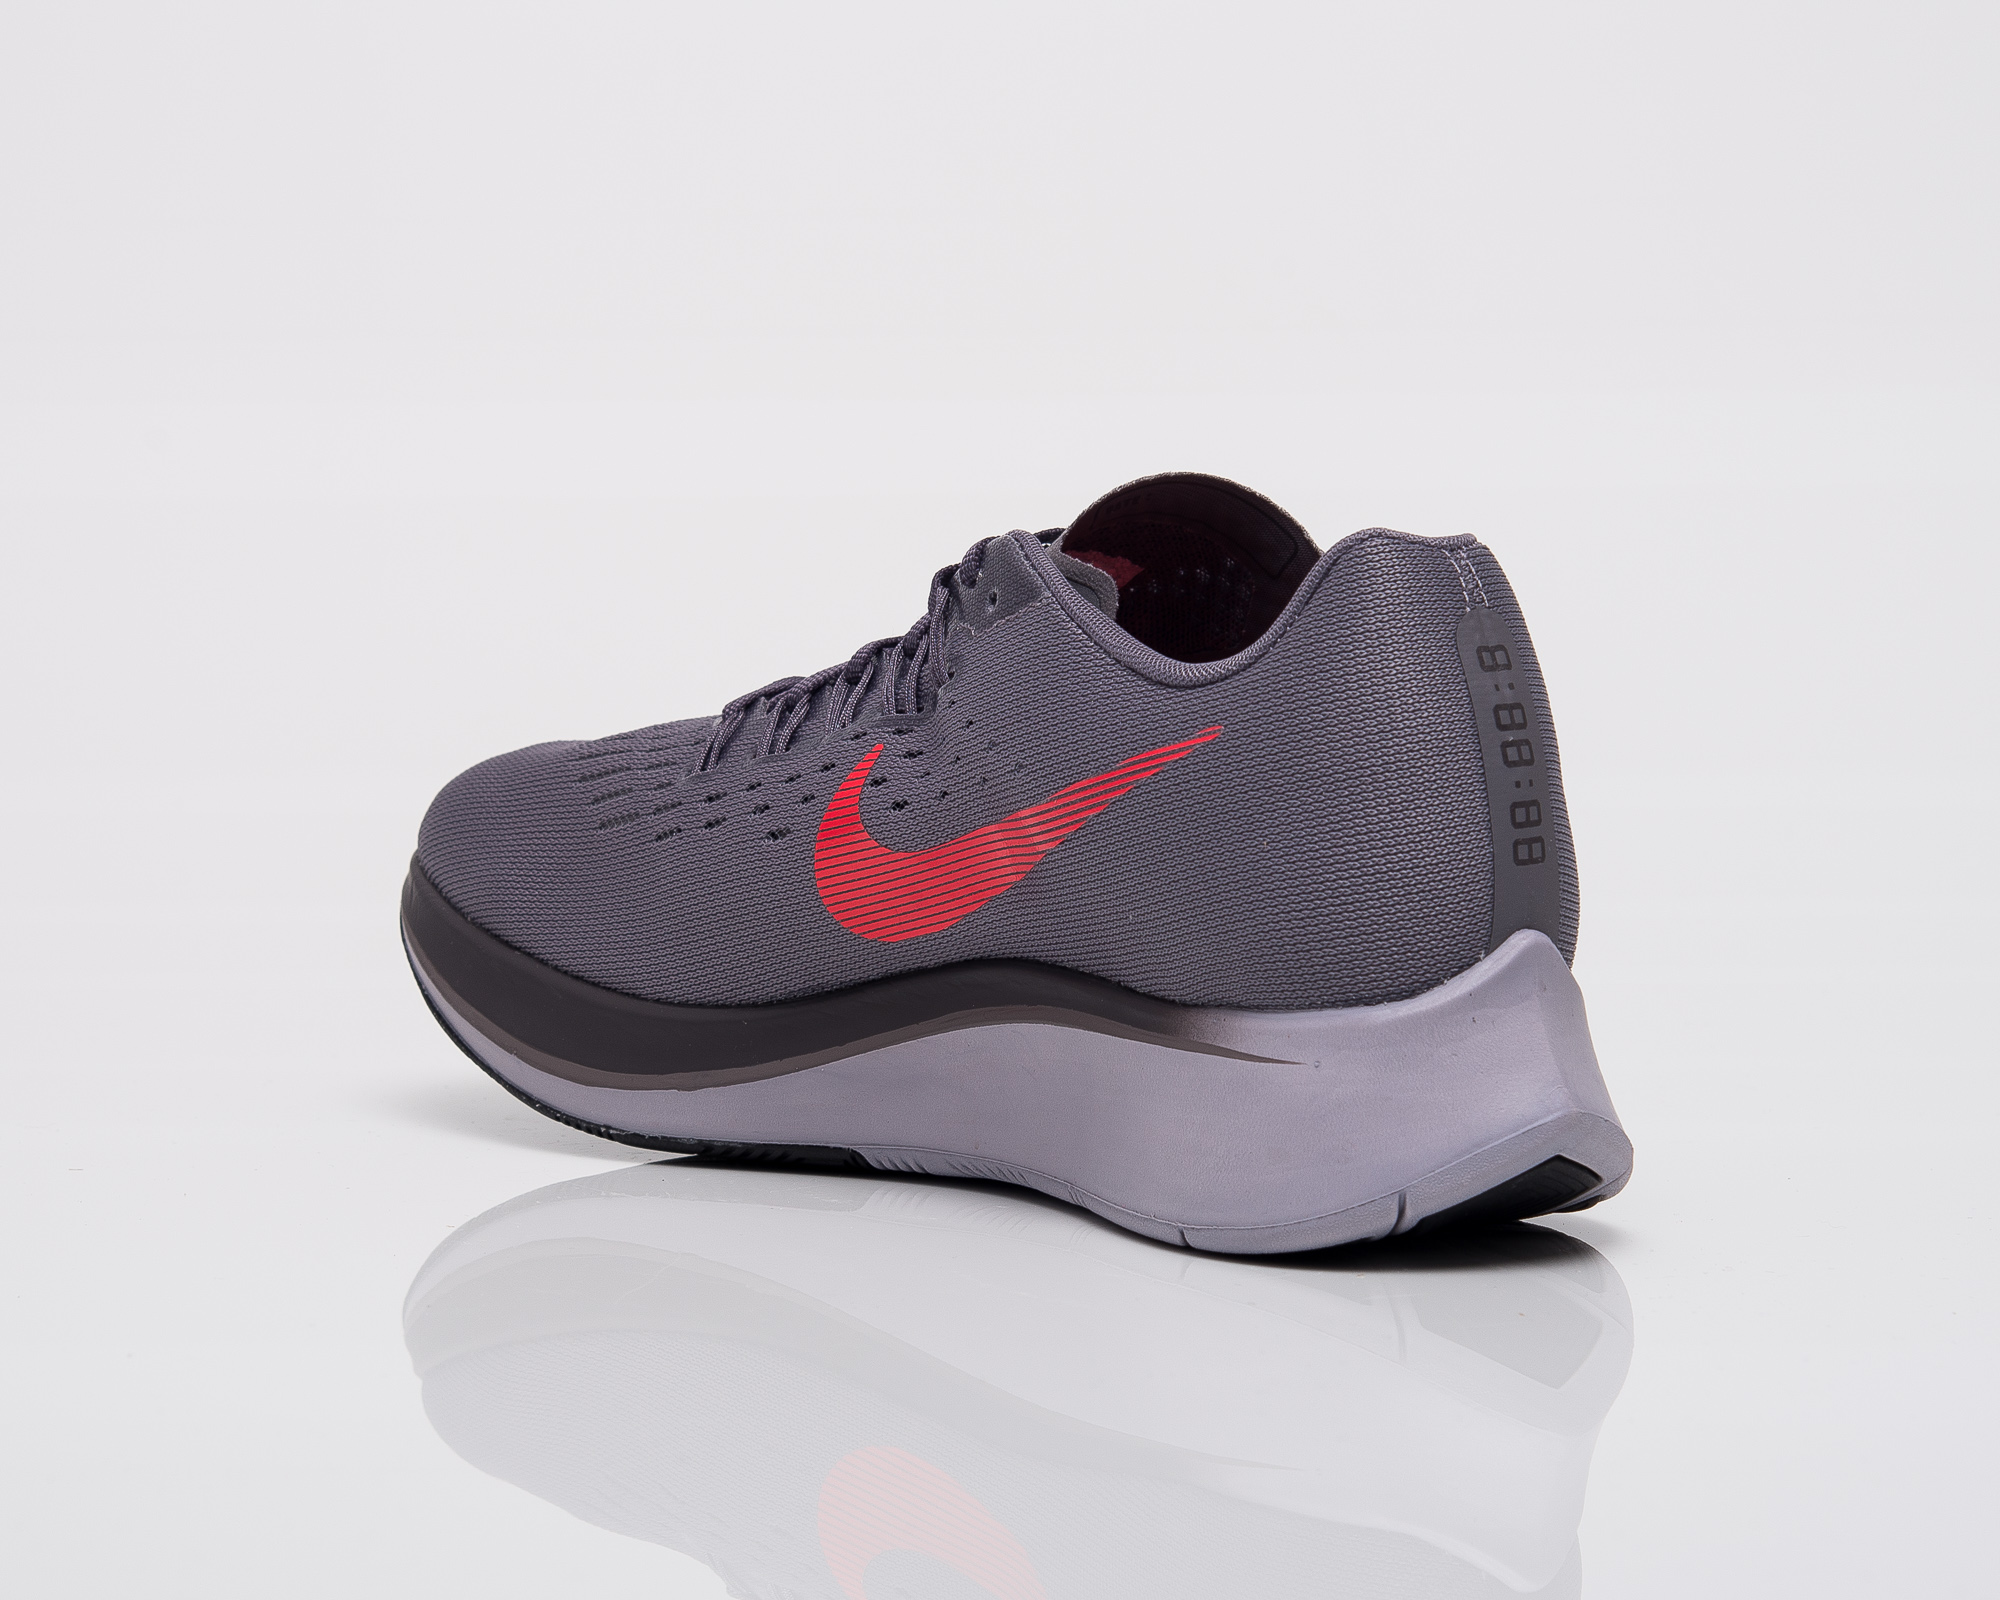 lowest price 6af38 5ab01 Nike Zoom Fly - Shoes Running - Sporting goods  sil.lt